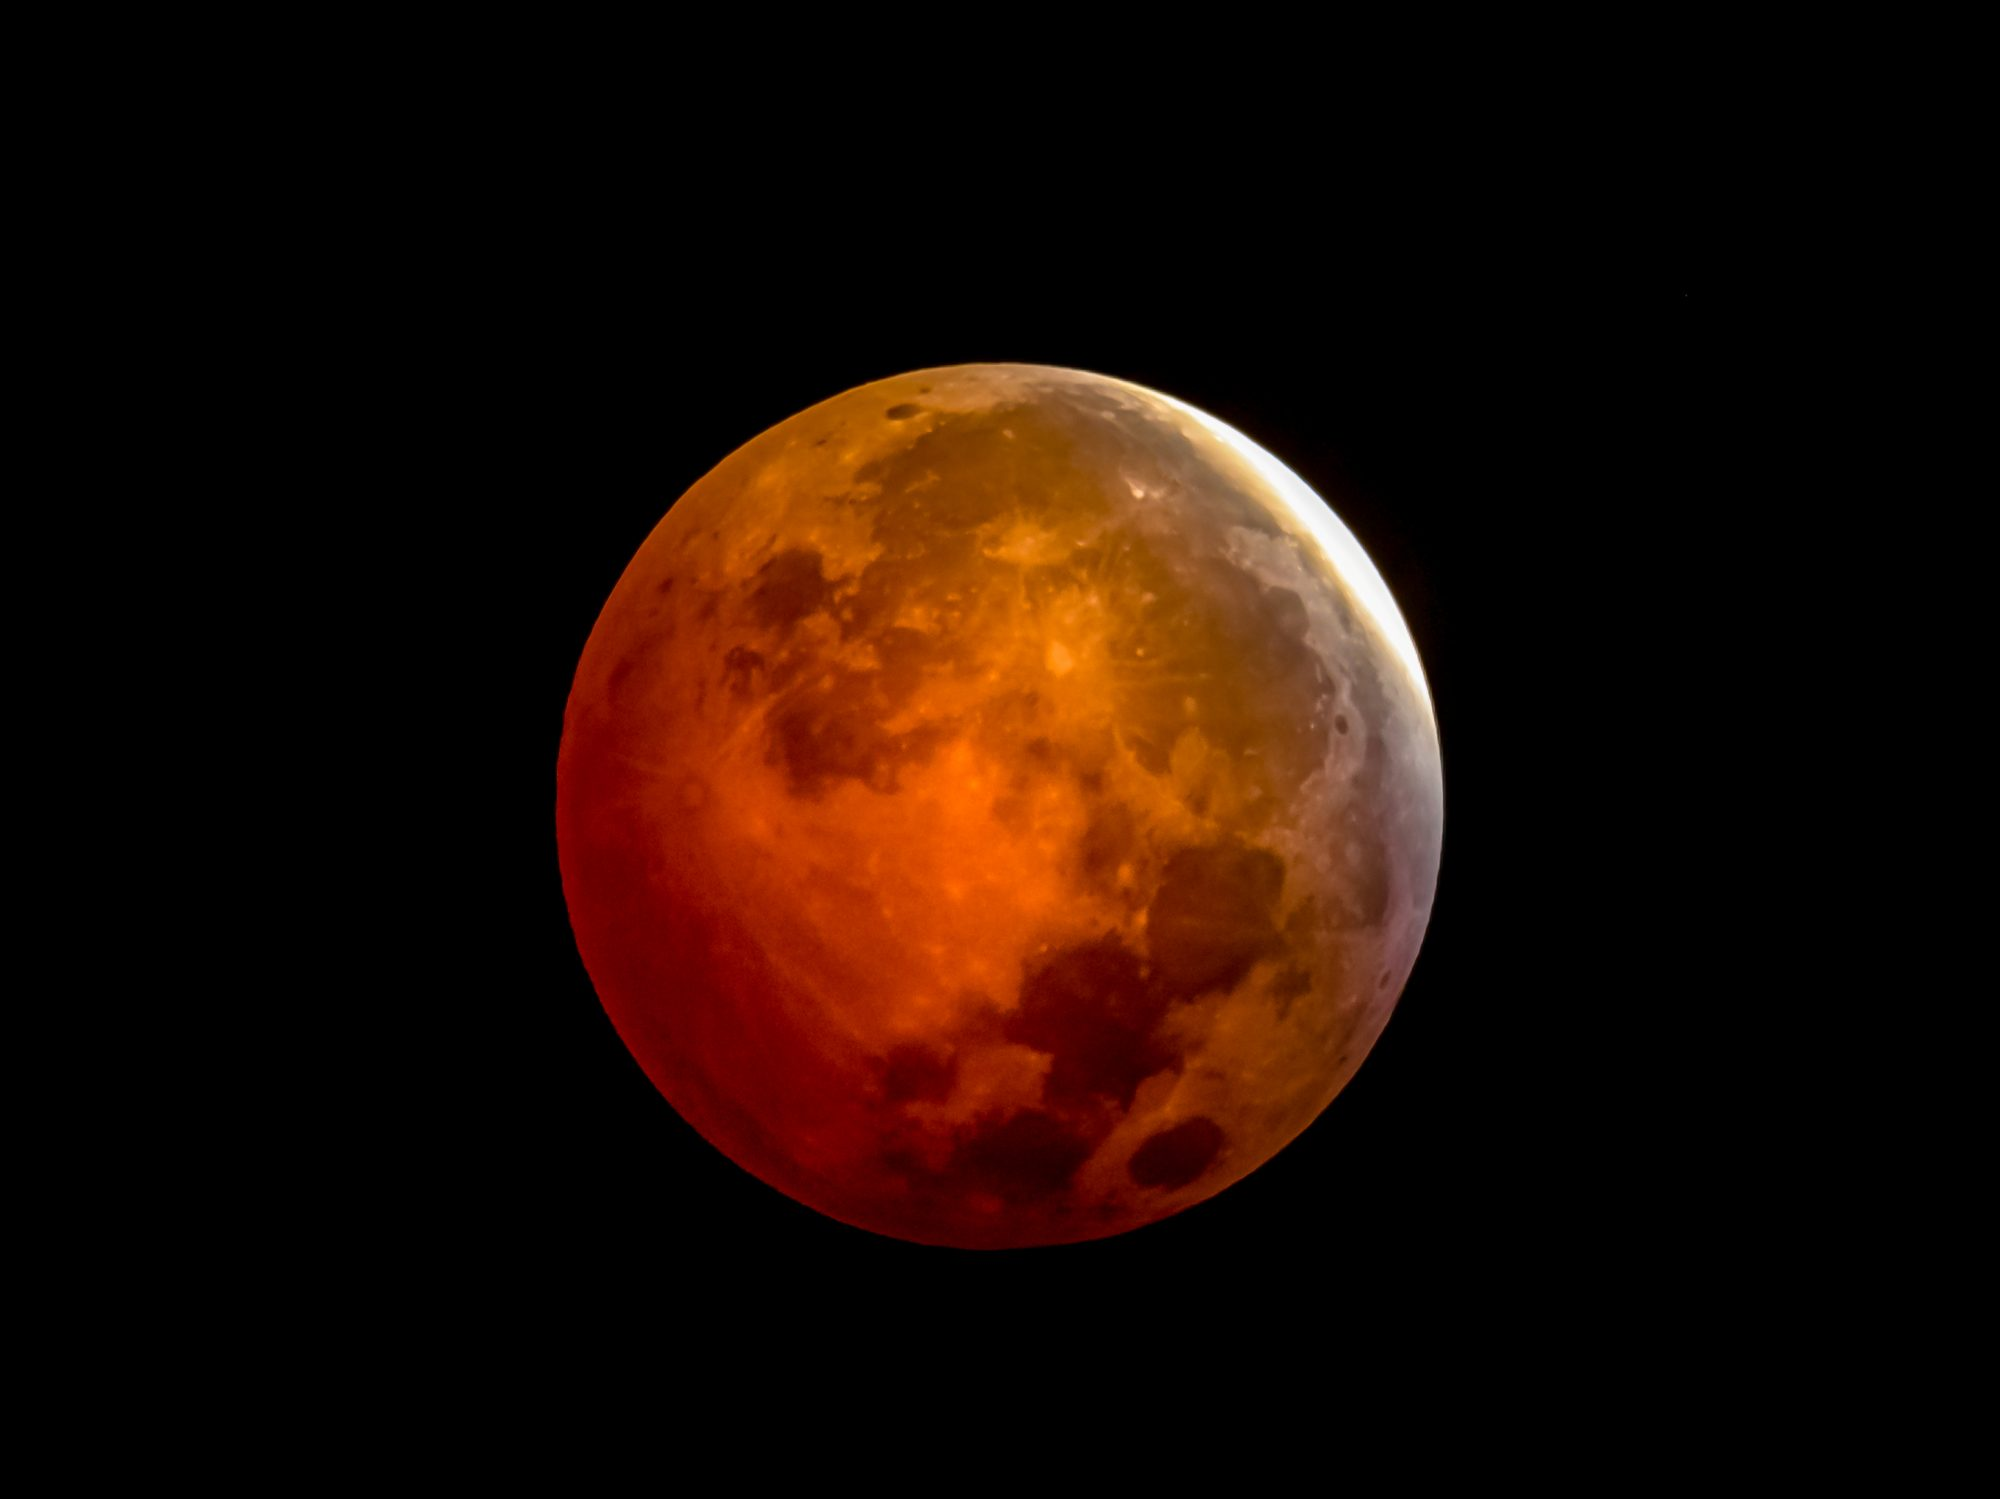 What time is the lunar eclipse tomorrow